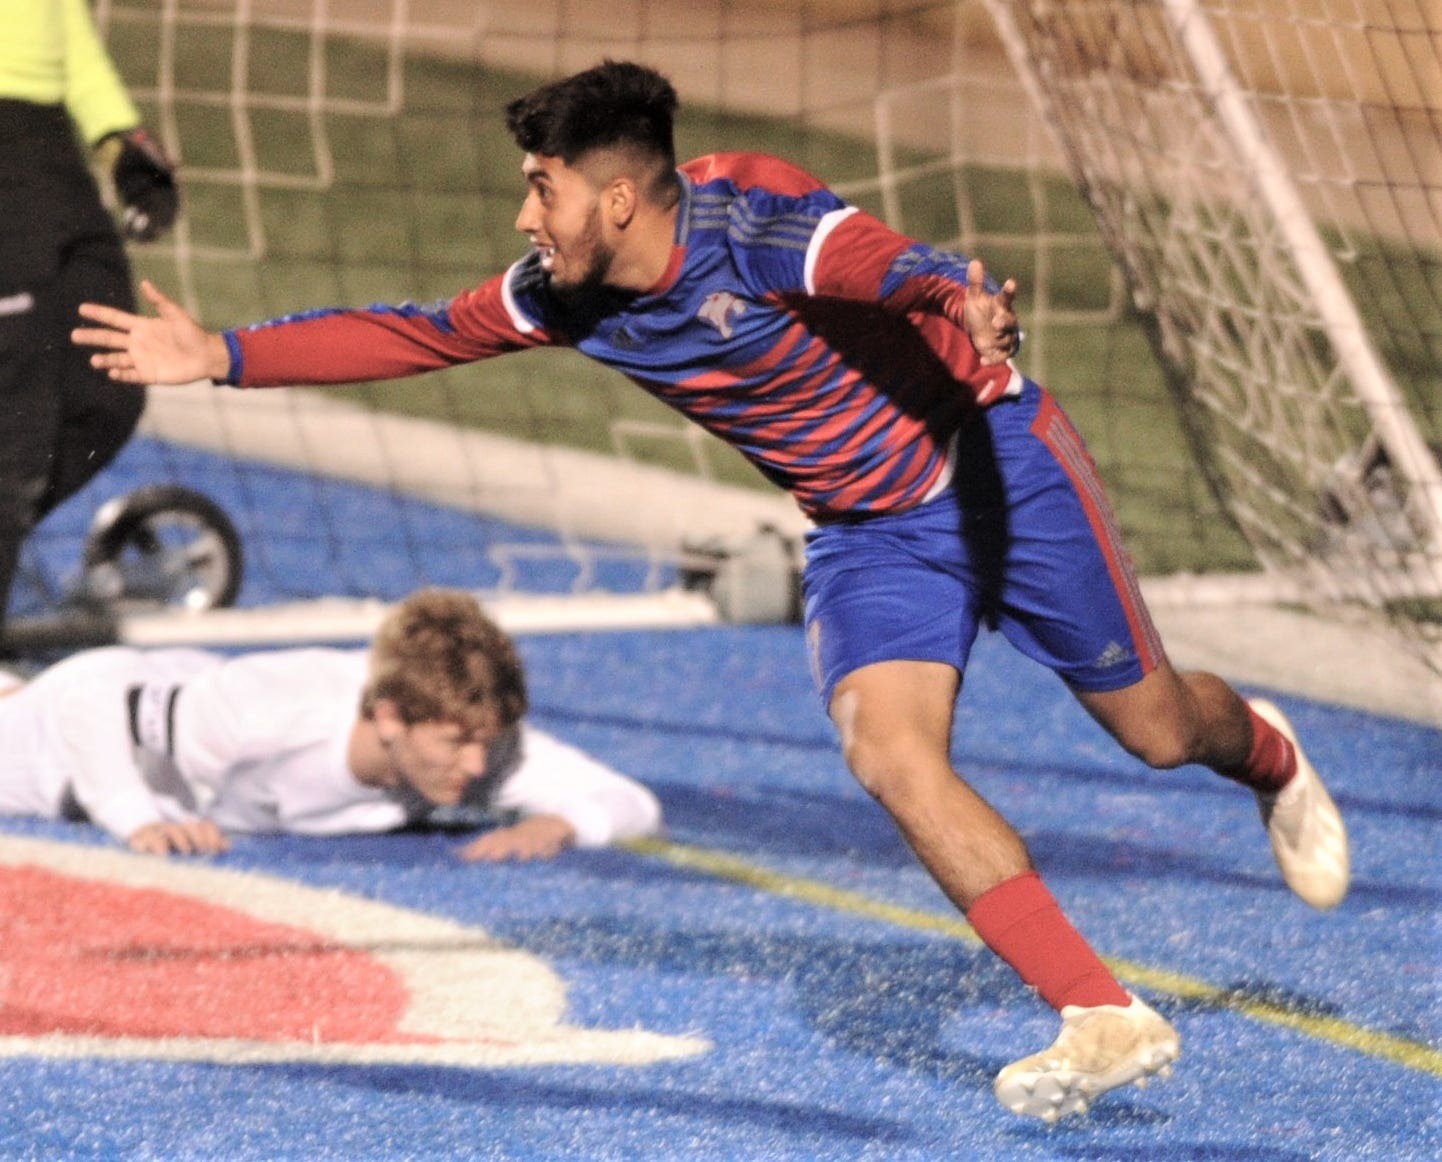 Cooper's Michael Rangel, right, celebrates after scoring the tying goal with 30:33 left in the game against Abilene High on Jan. 18 at Shotwell Stadium. Soccer will move to a new field at Shotwell when a track-and-field complex opens up thanks to the November 2018 bond program, with construction being led by FieldTurf USA Inc., which was approved as top bidder in a special AISD board meeting Monday afternoon.